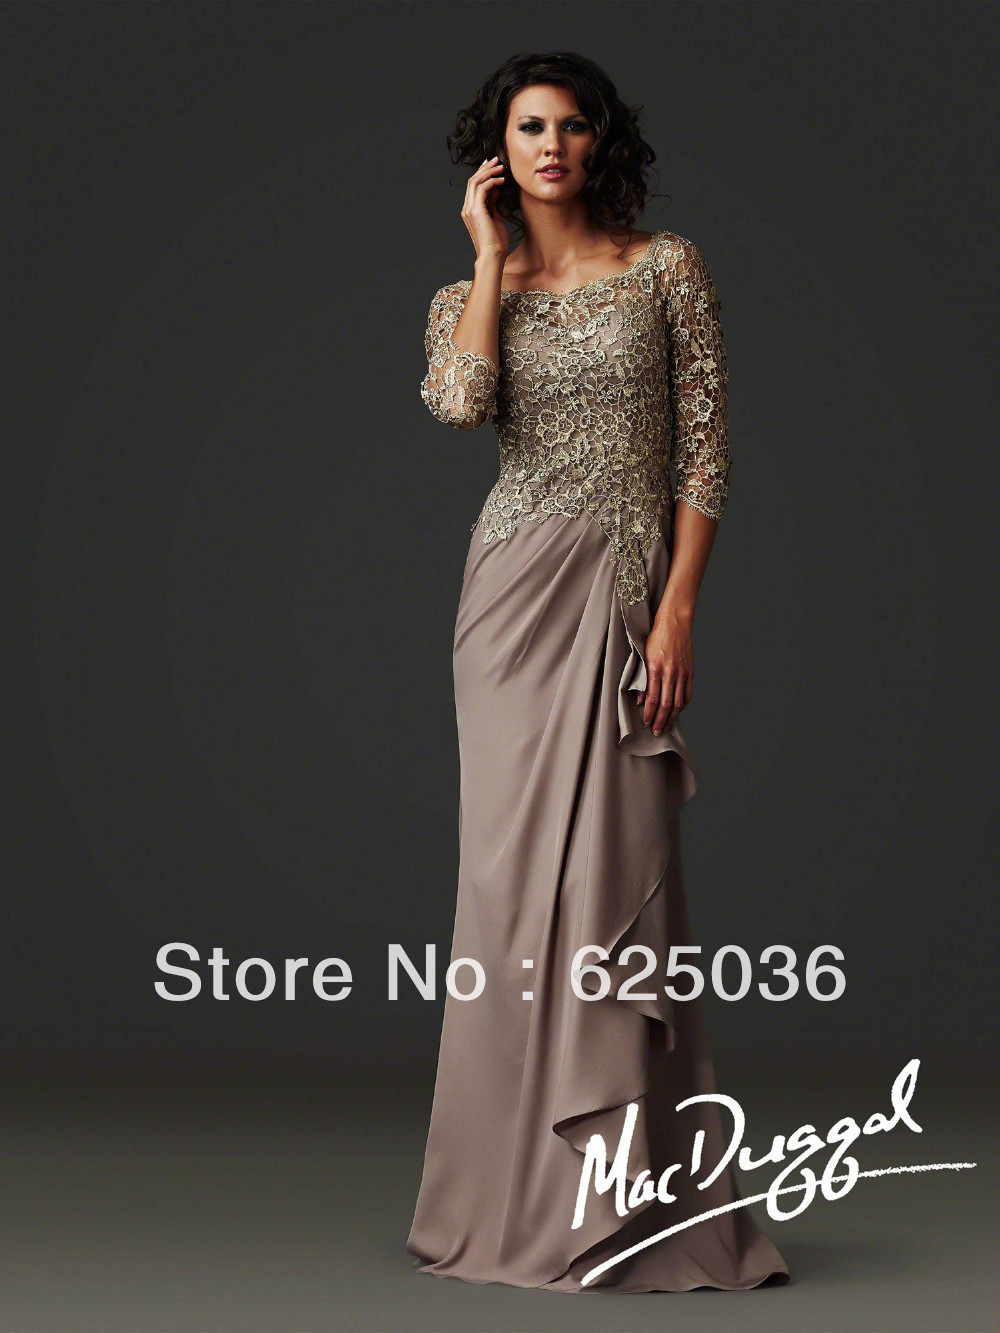 New elegant bride mother dress wedding party formal gown for Parents dress for wedding